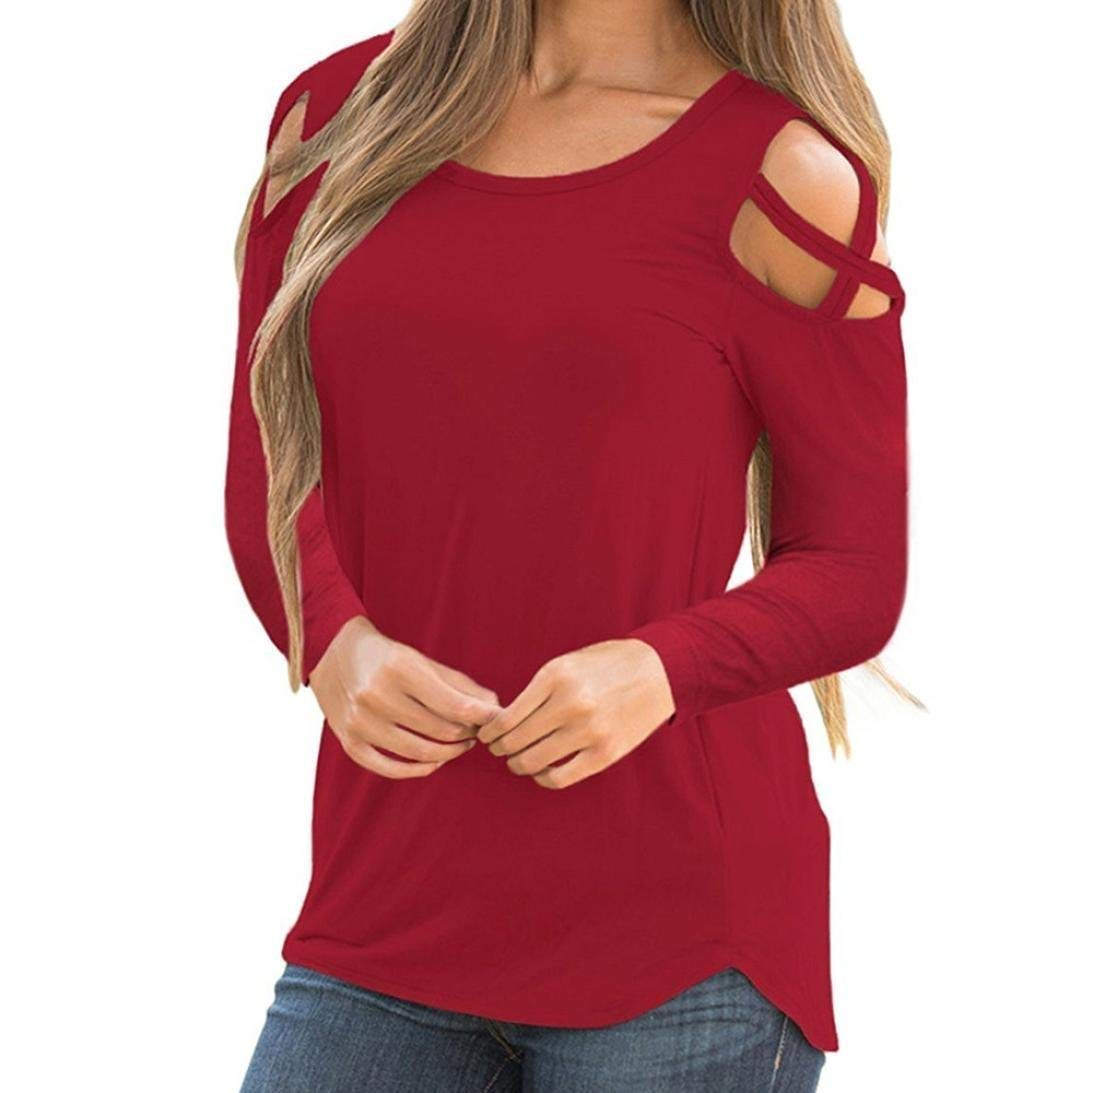 2018 Autumn New Cheap Women Long Sleeve Strappy Cold Shoulder Solid T-Shirt Tops Blouses Baigoods